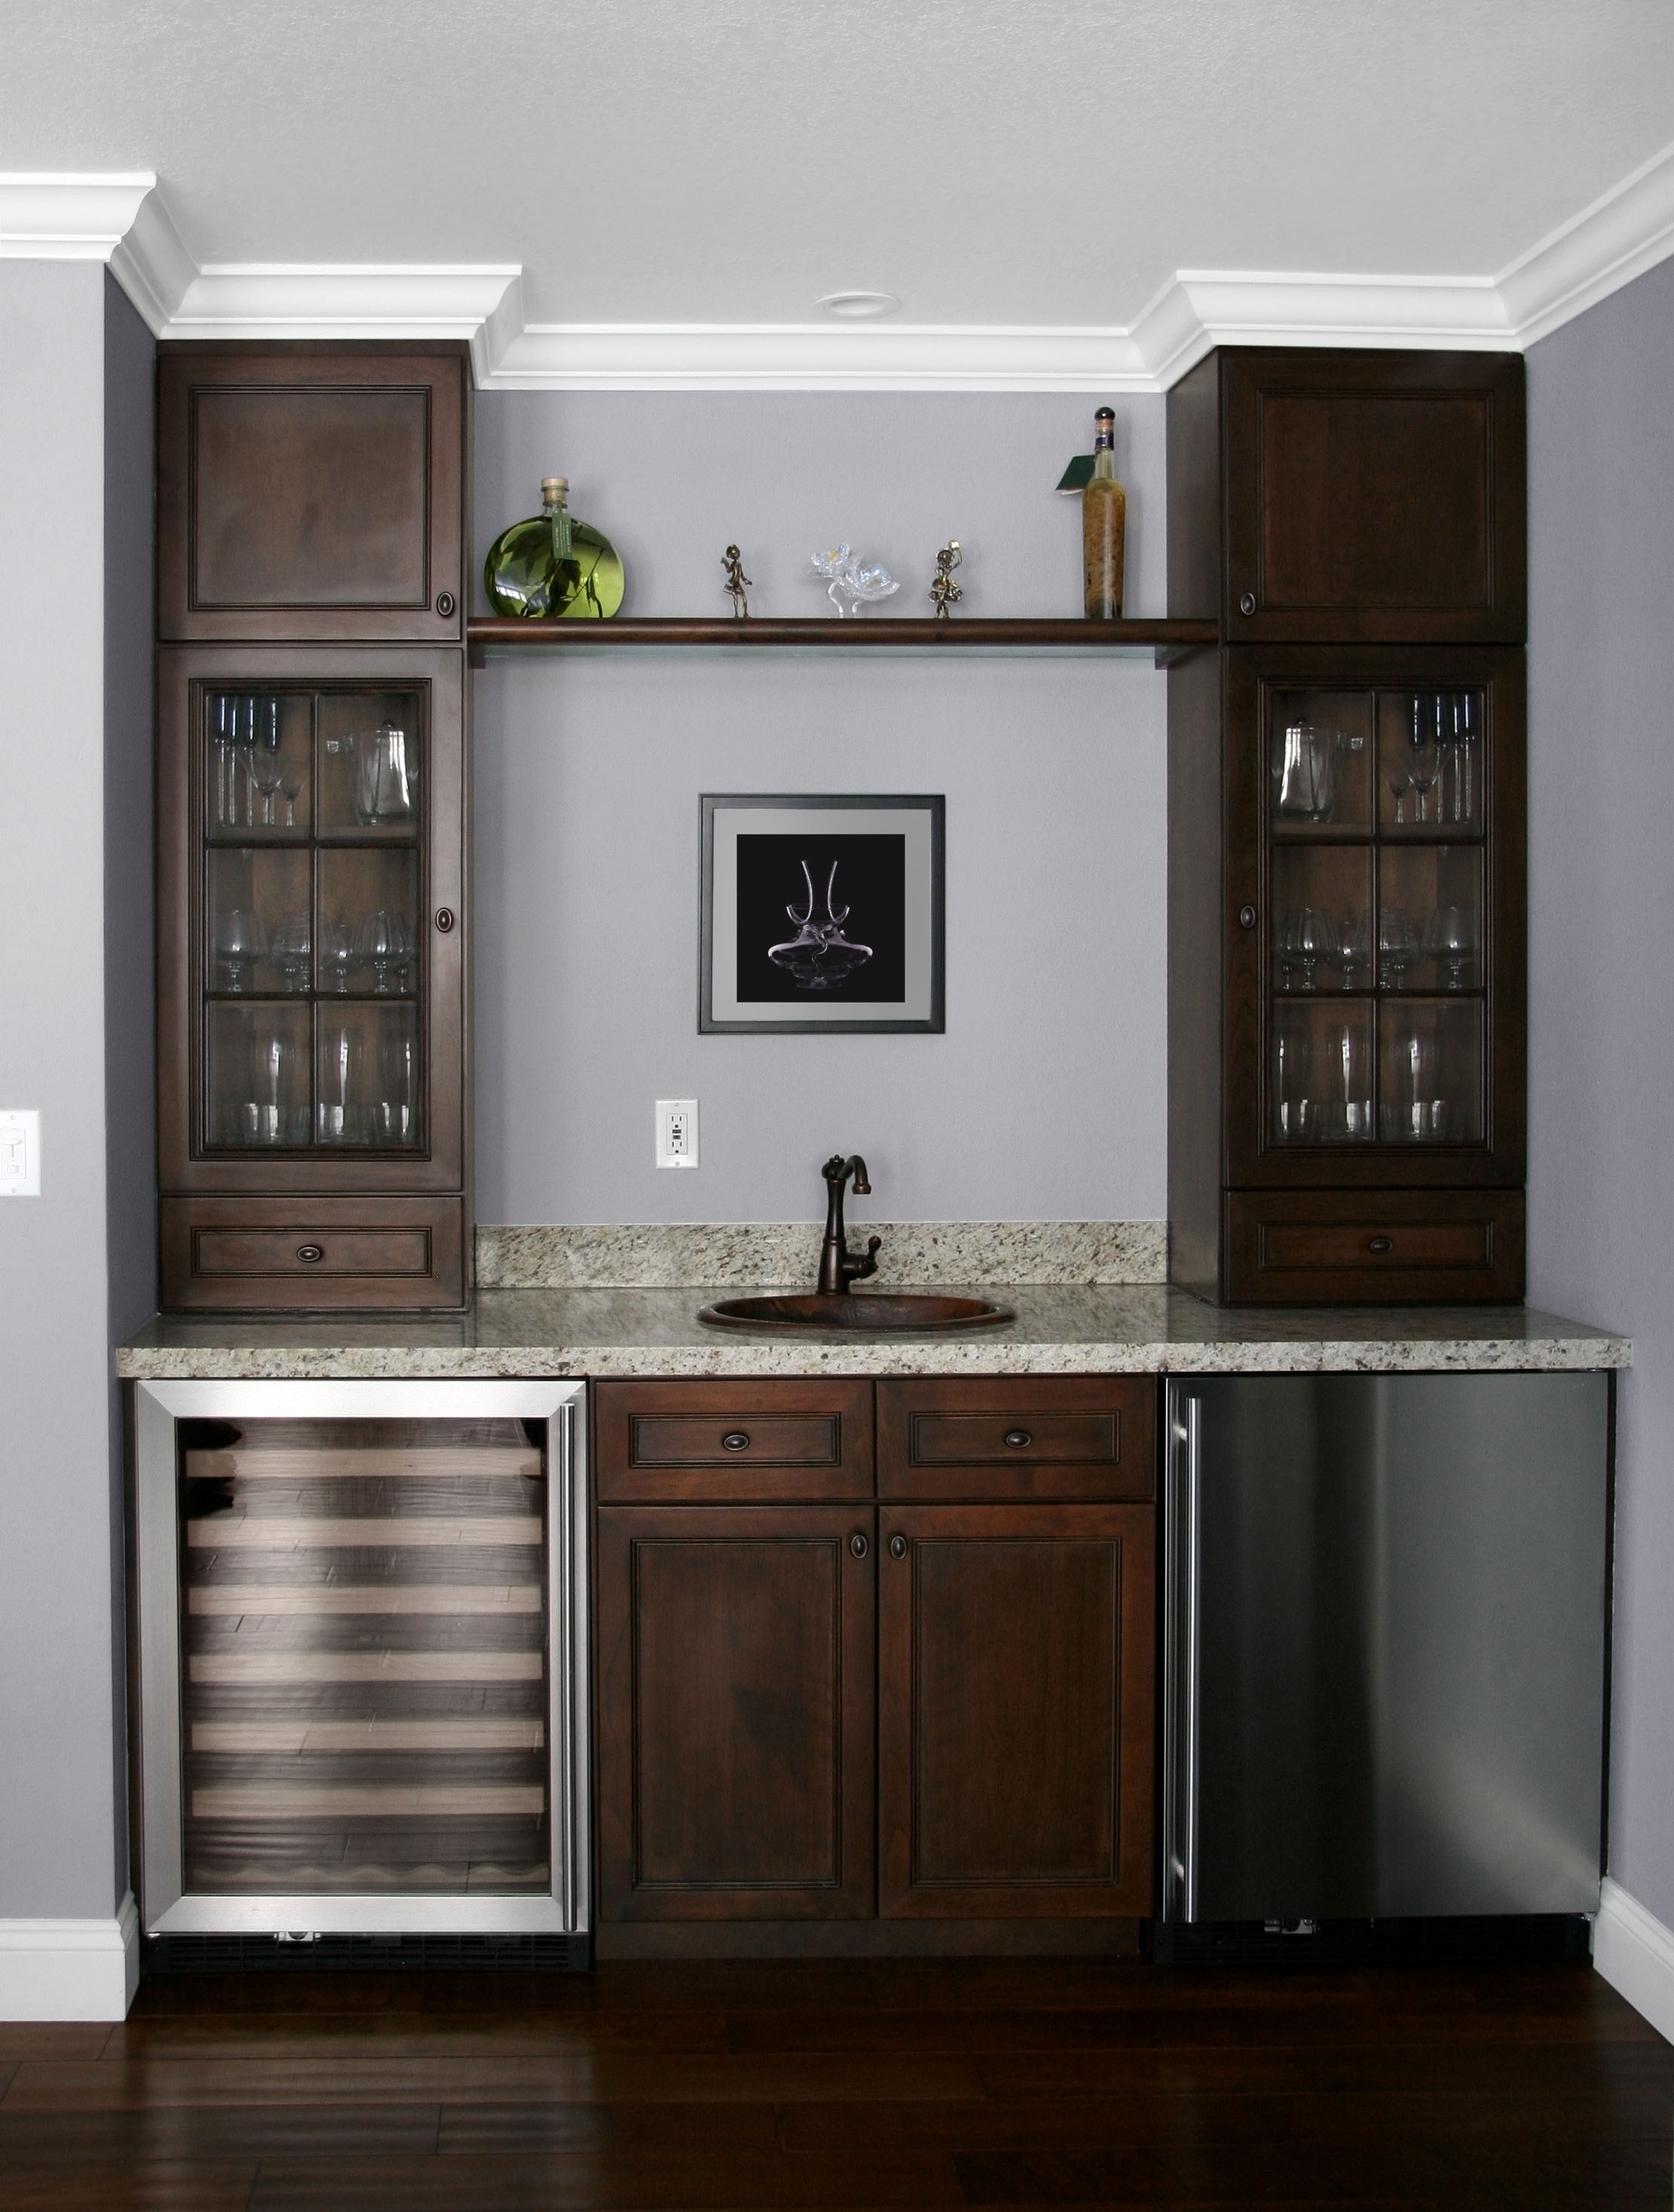 Planning a wet bar Visit a real one and take notes